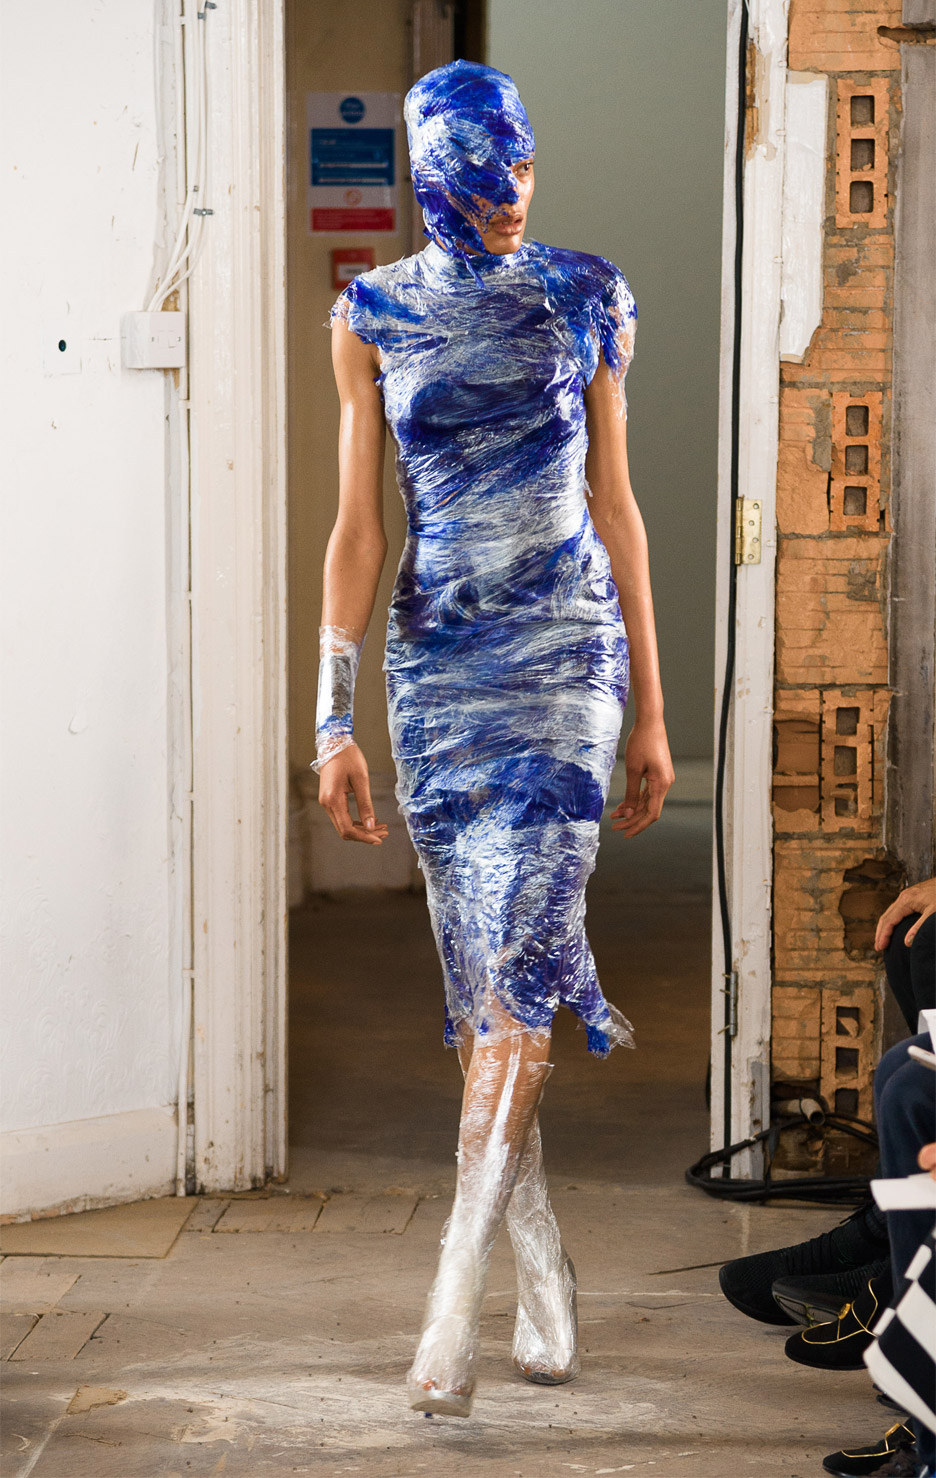 Stefanie Tschirky's RCA graduate fashion collection